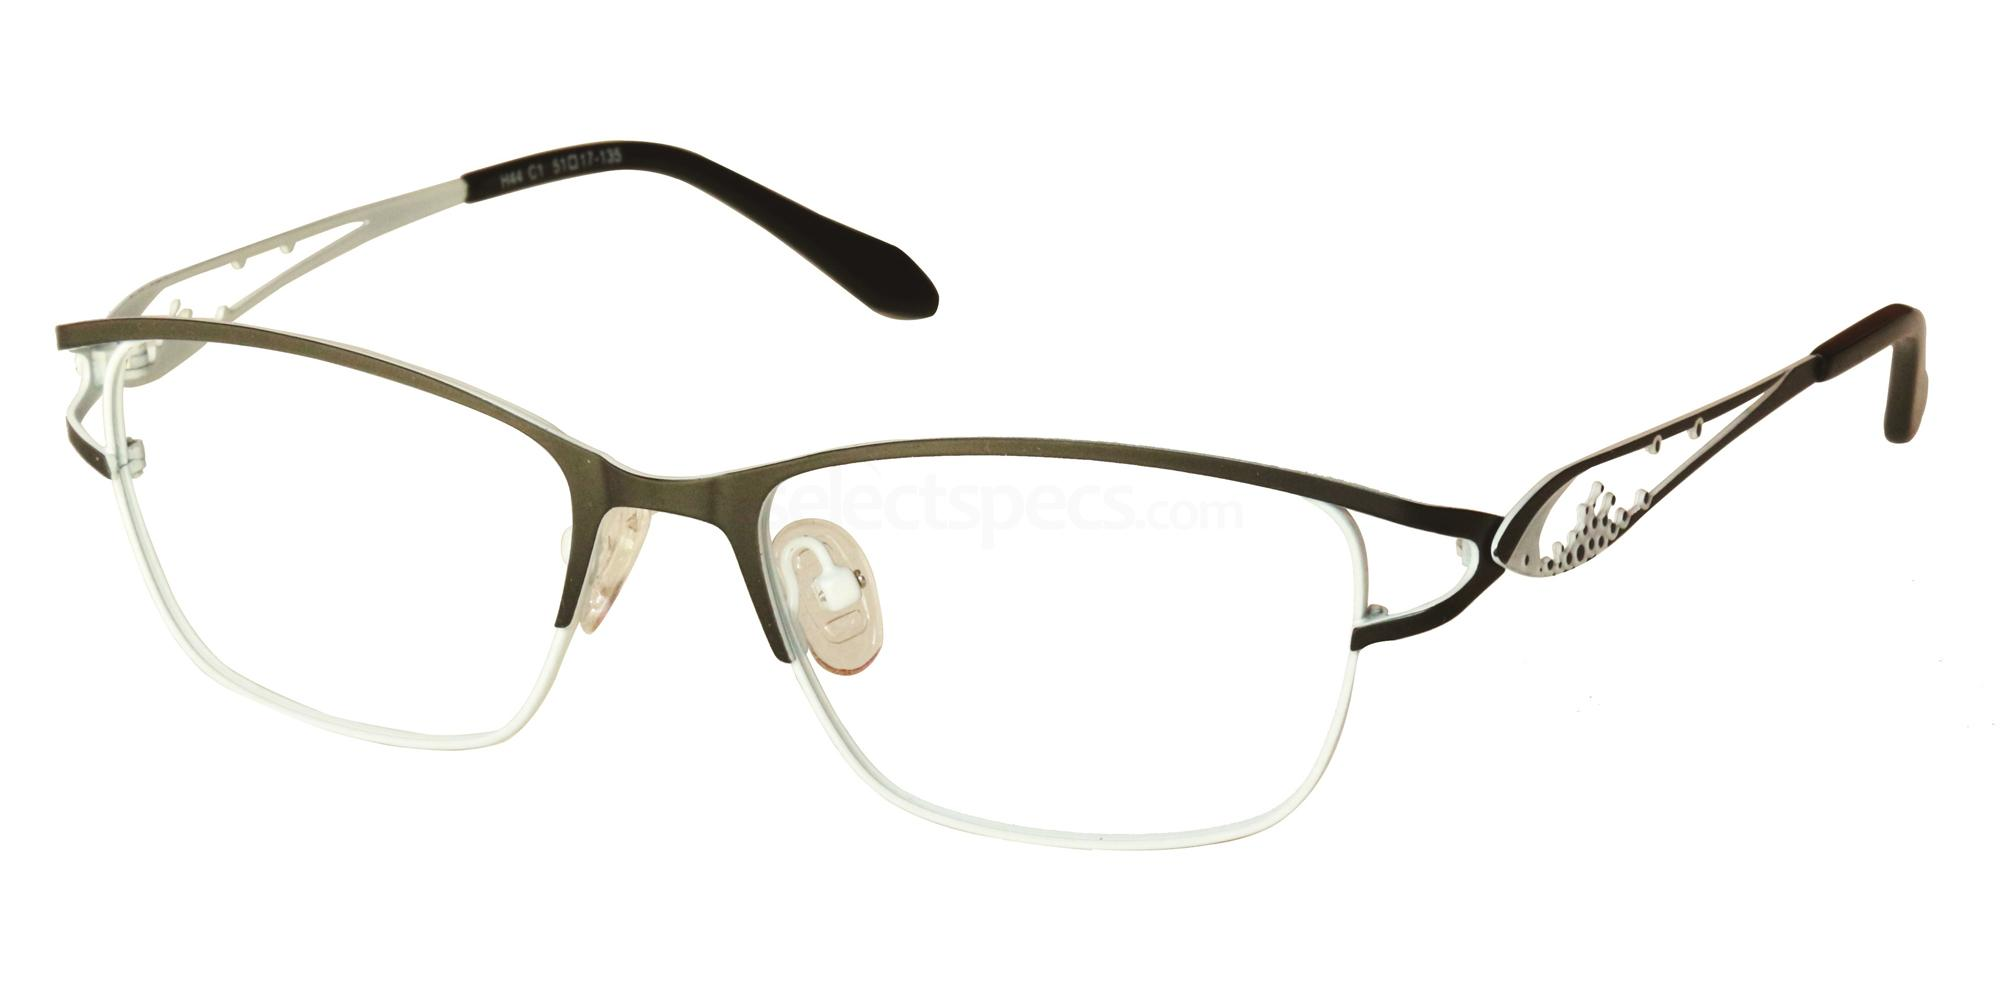 C1 H44 Glasses, Halstrom